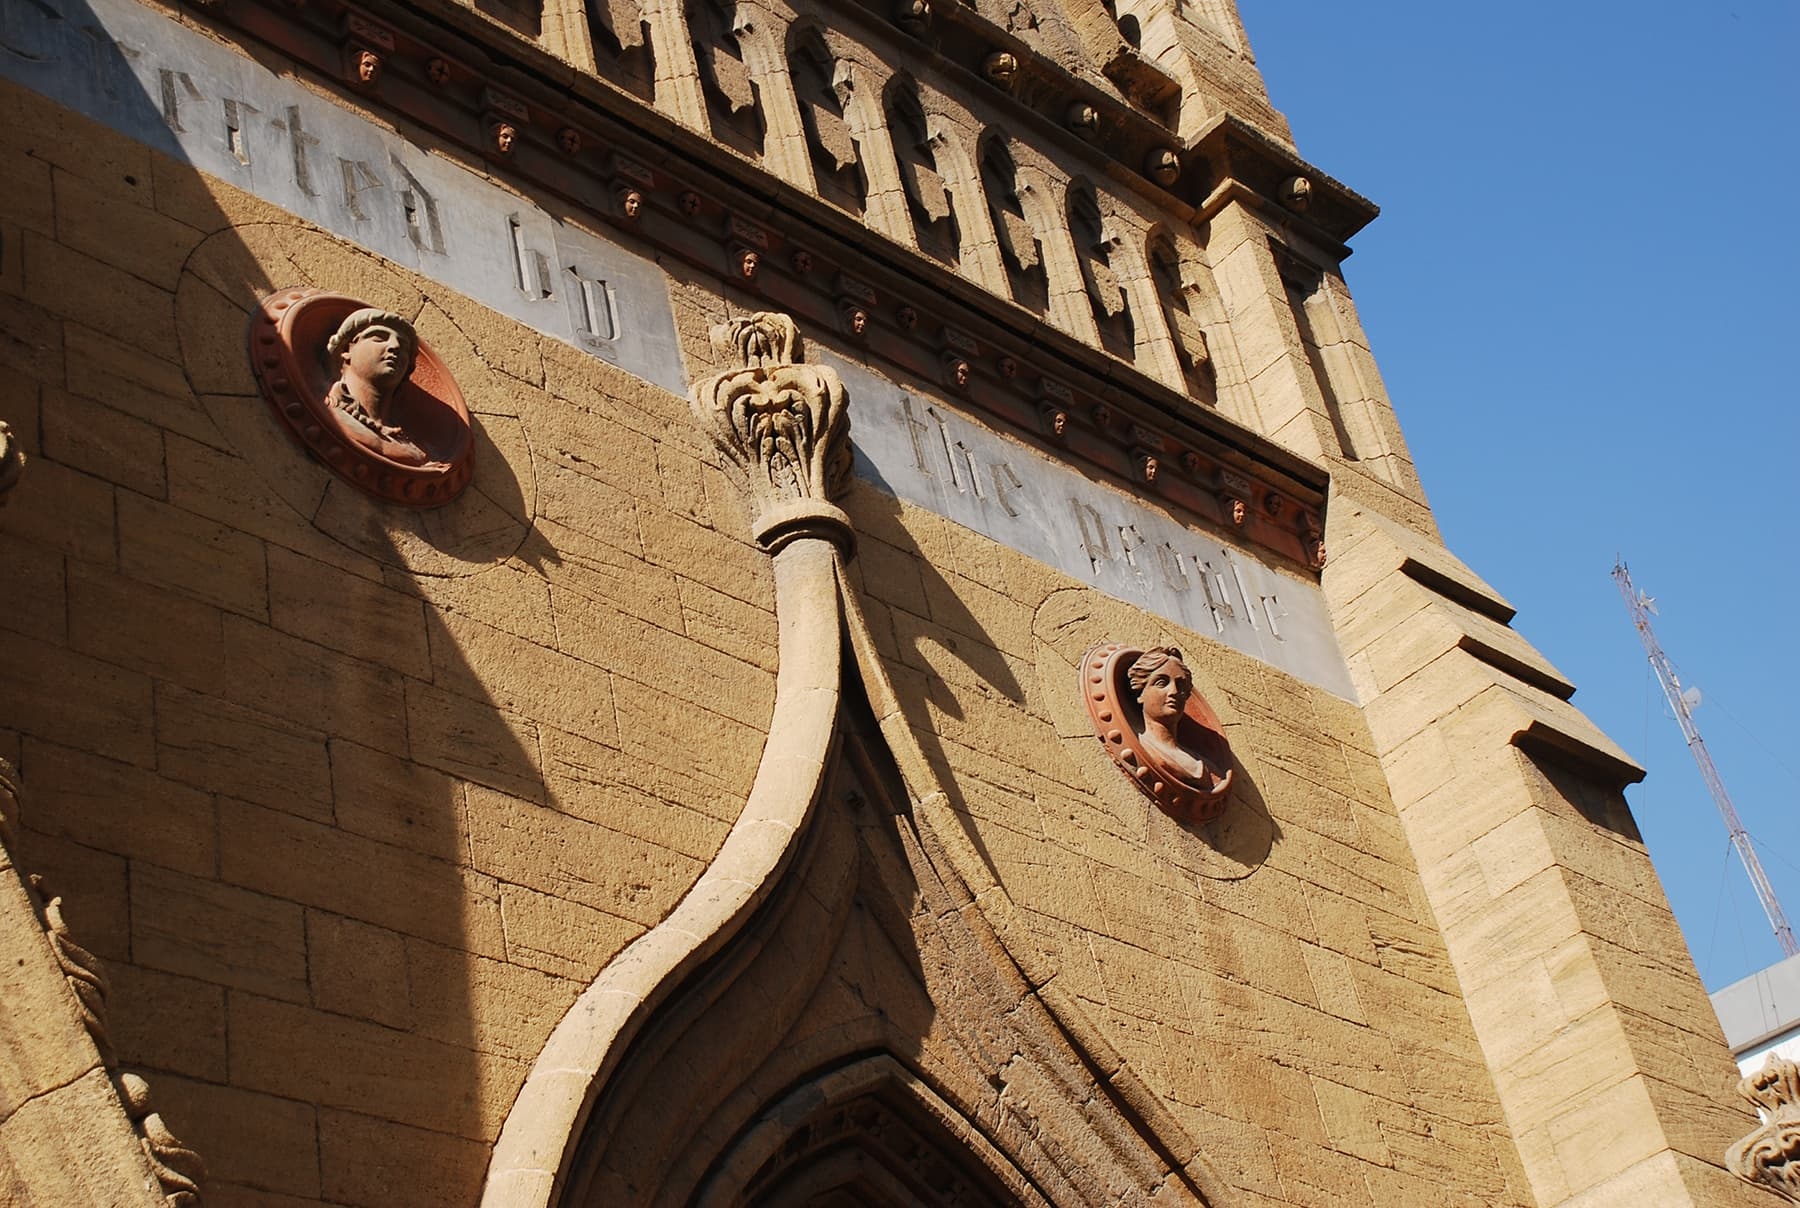 Merewether Tower has some interesting motifs and designs on its exterior.